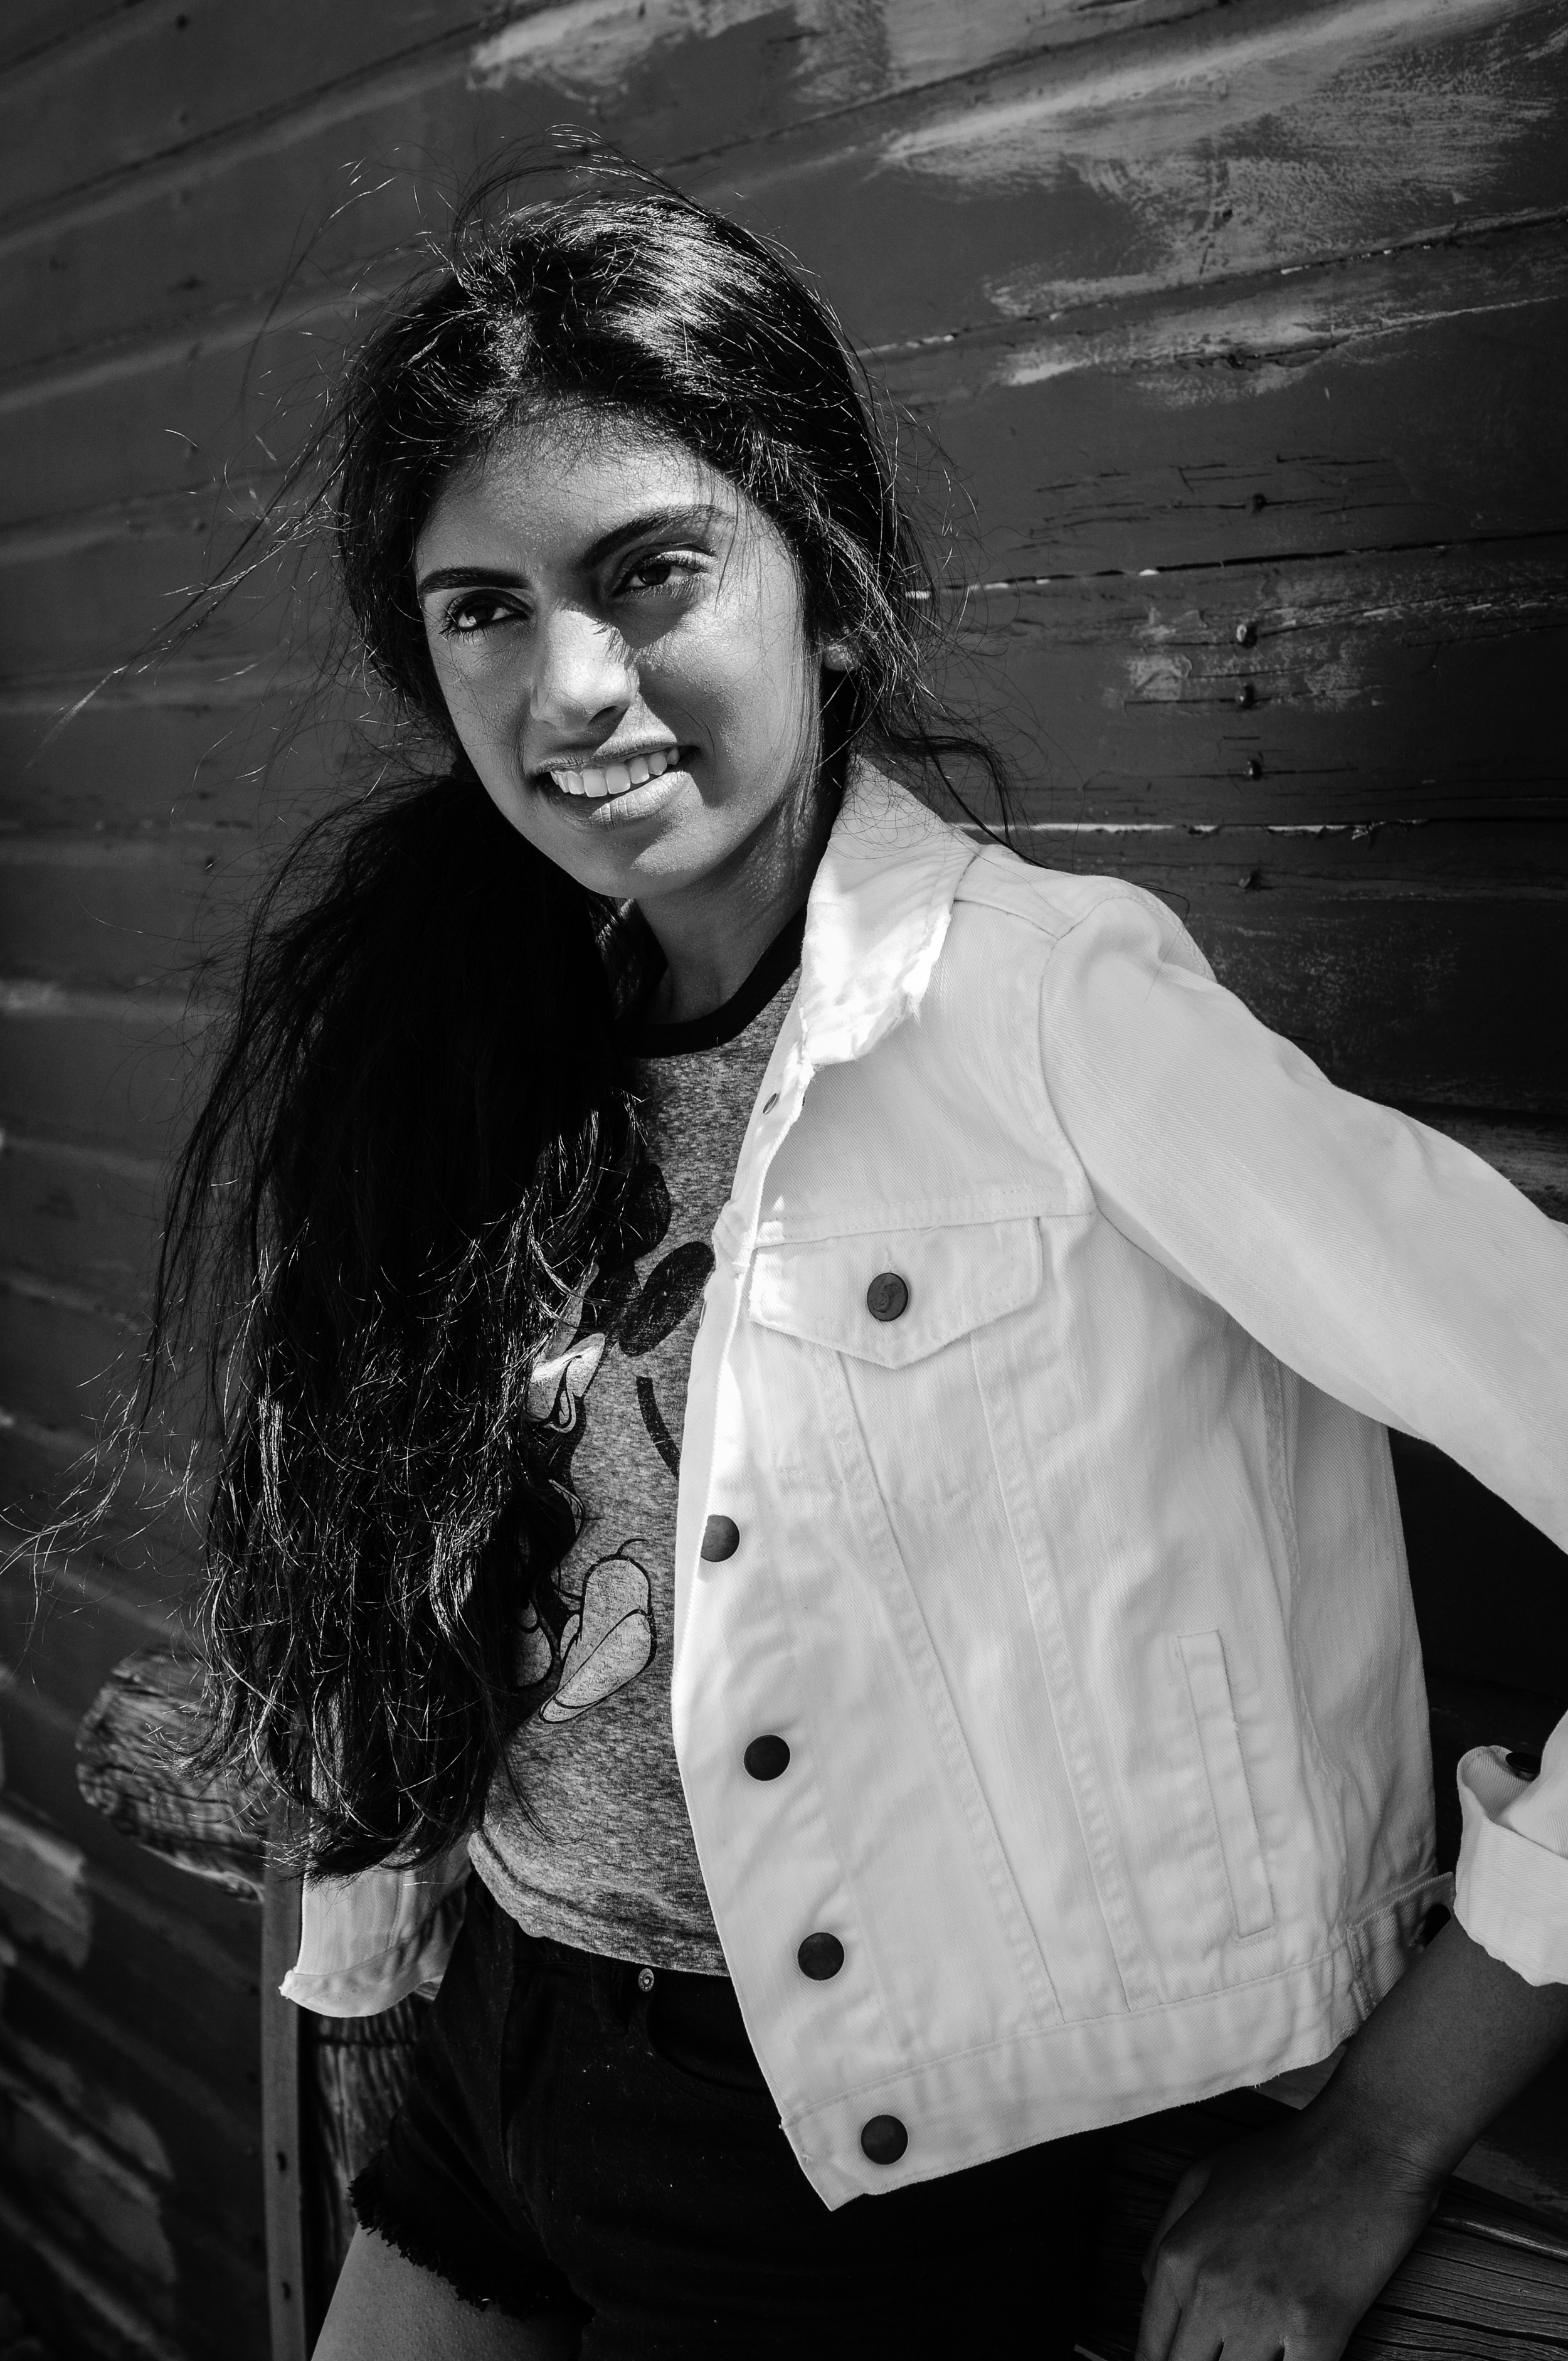 editorial, new talent, las vegas, modeling, free people, black and white, portrait, young girl portrait, teen portrait, young teen talent,